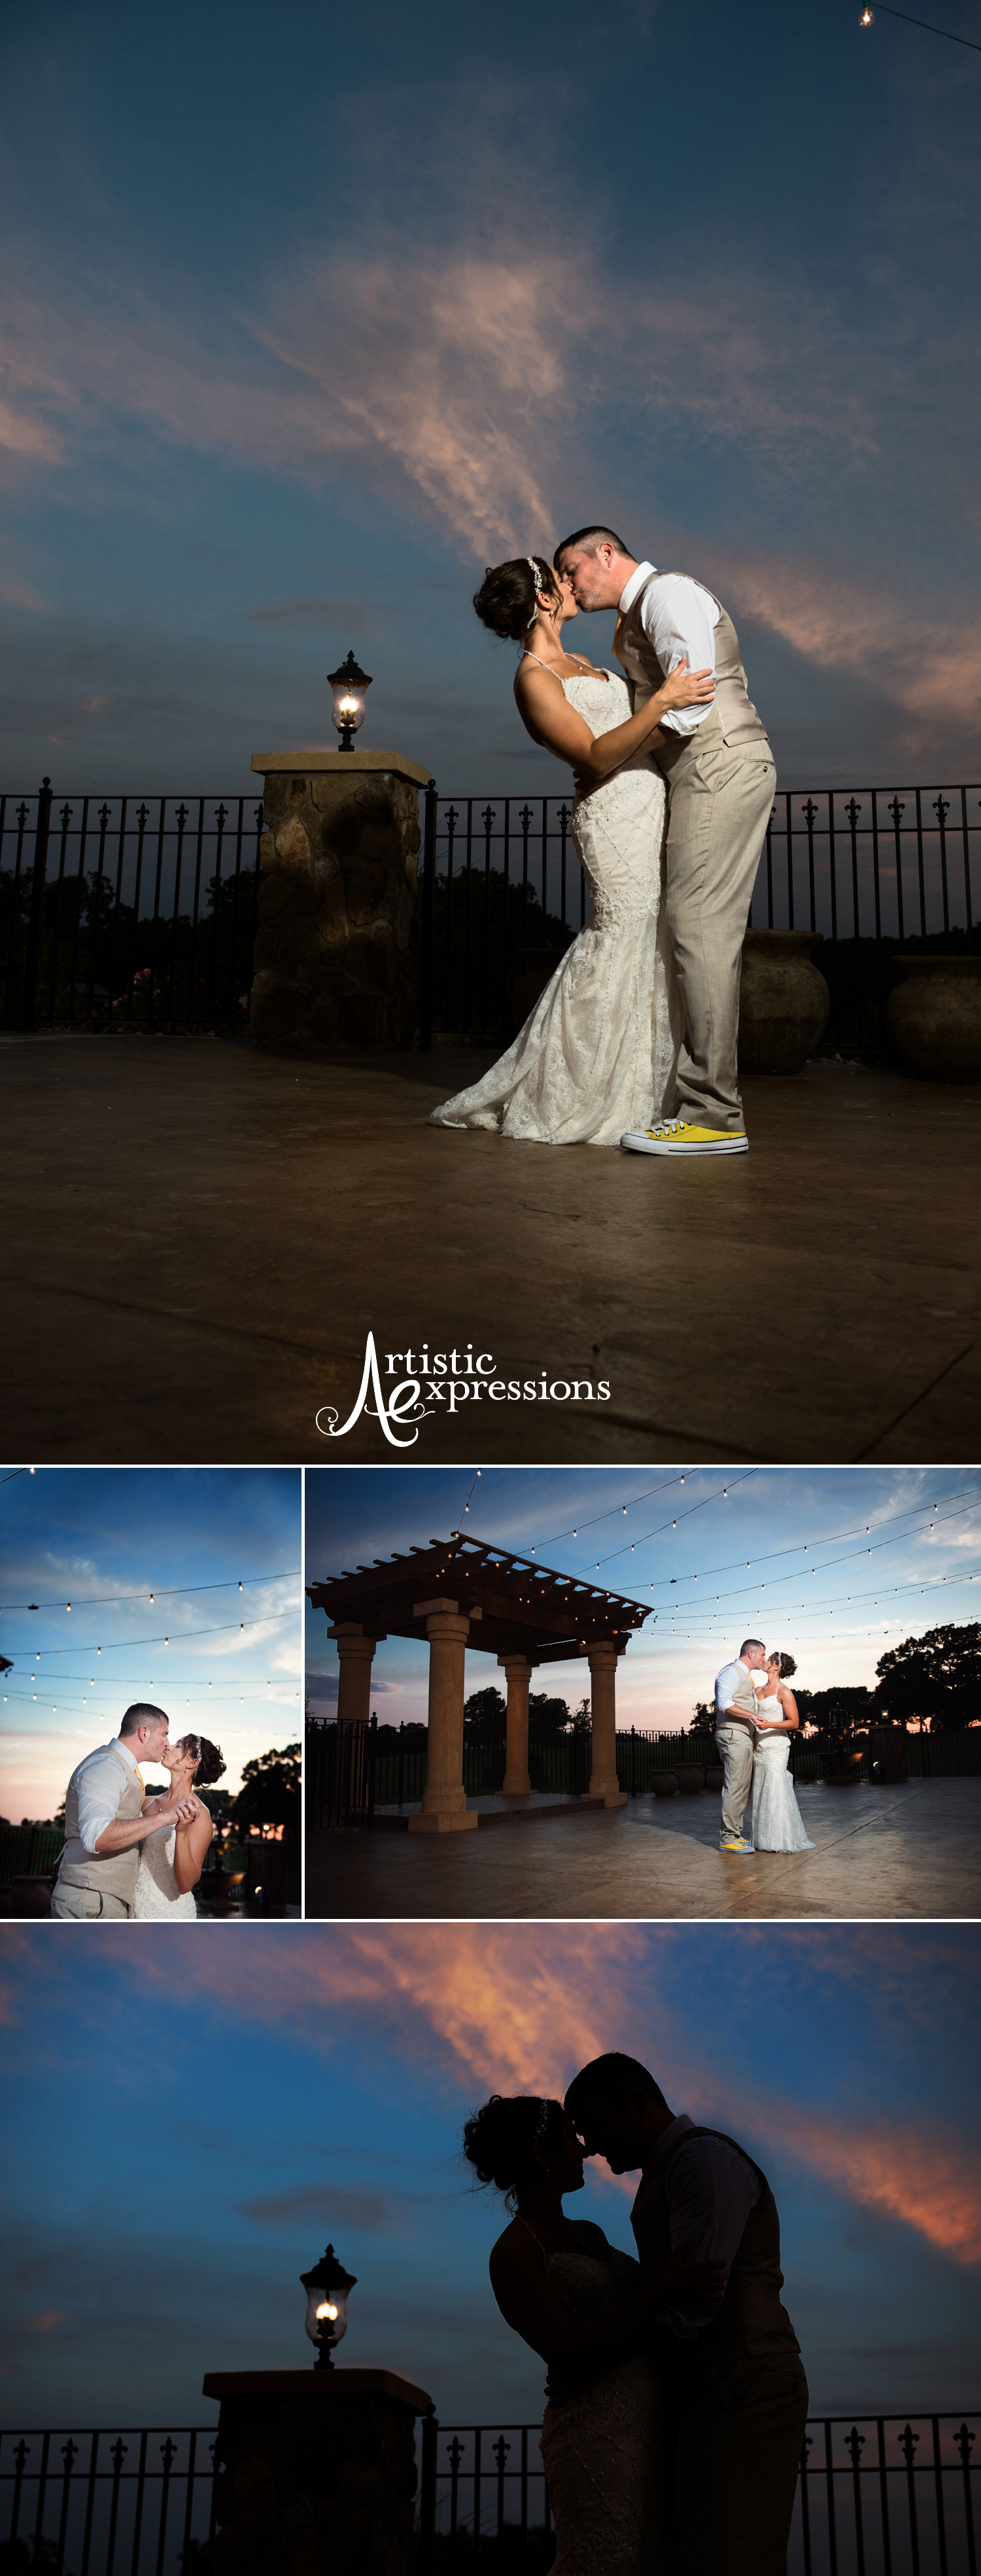 joplin expressions artistic expressions photography blog of